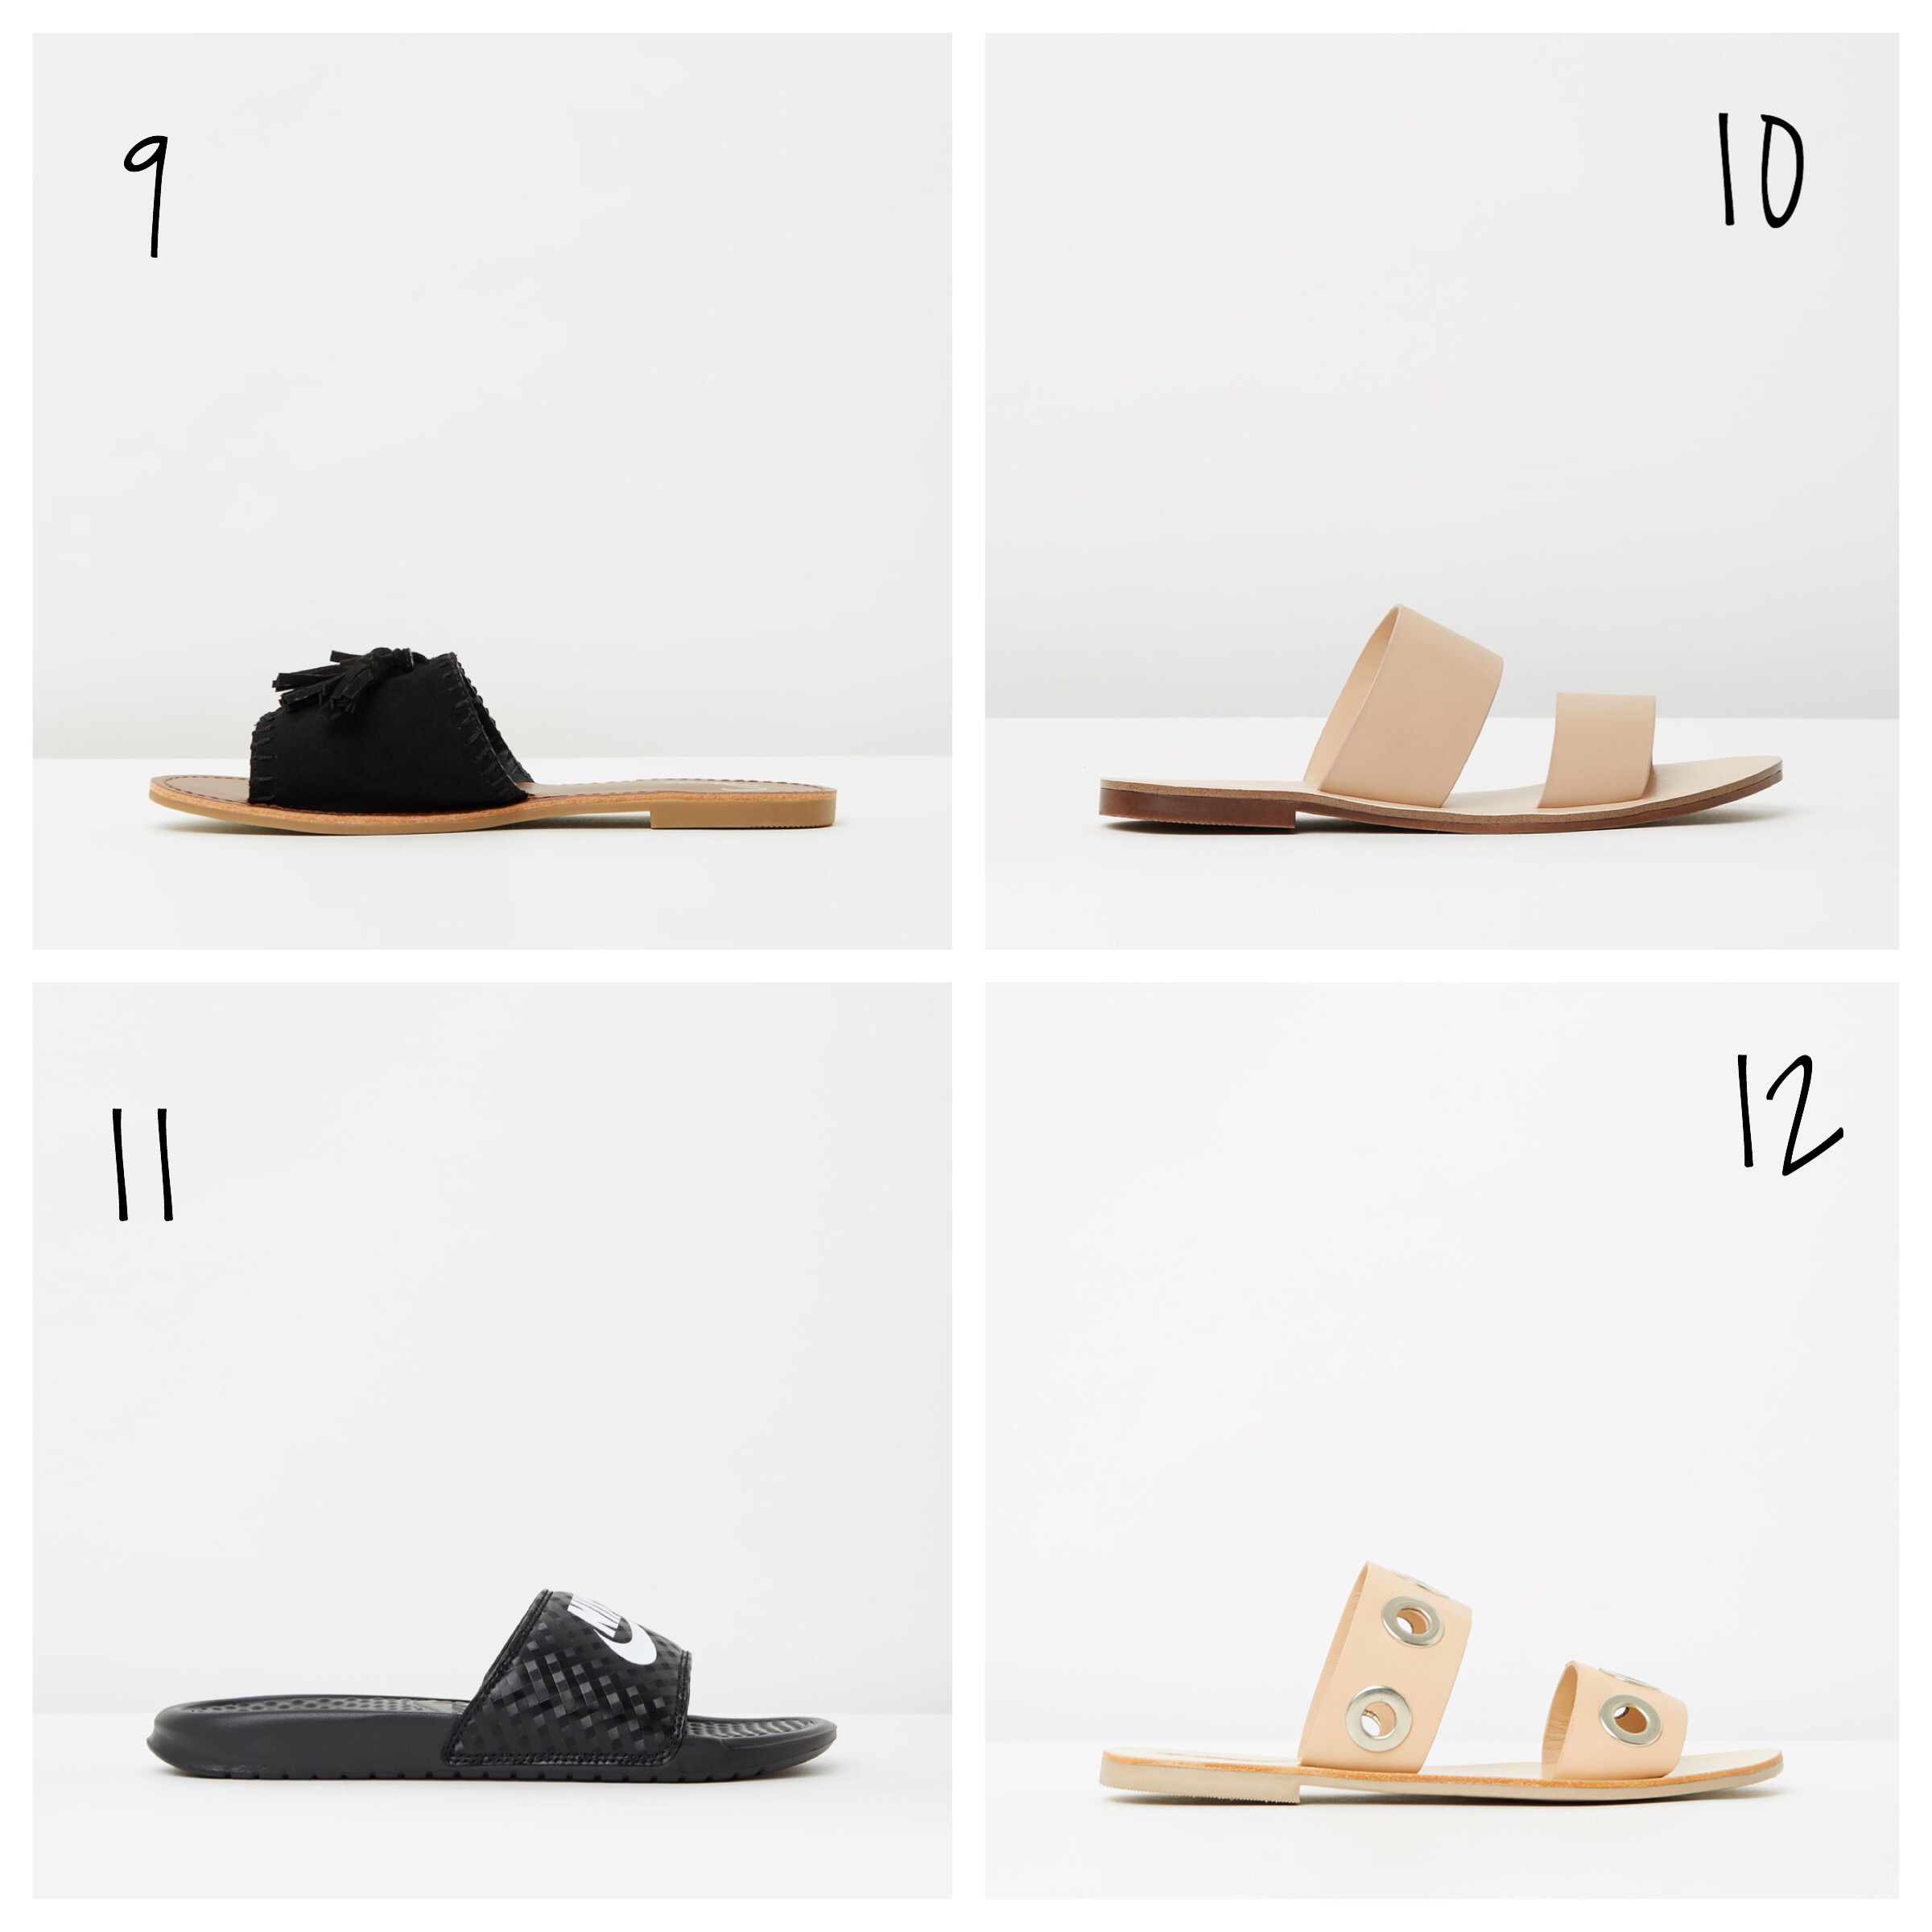 nike slides pool slides leather slides mules